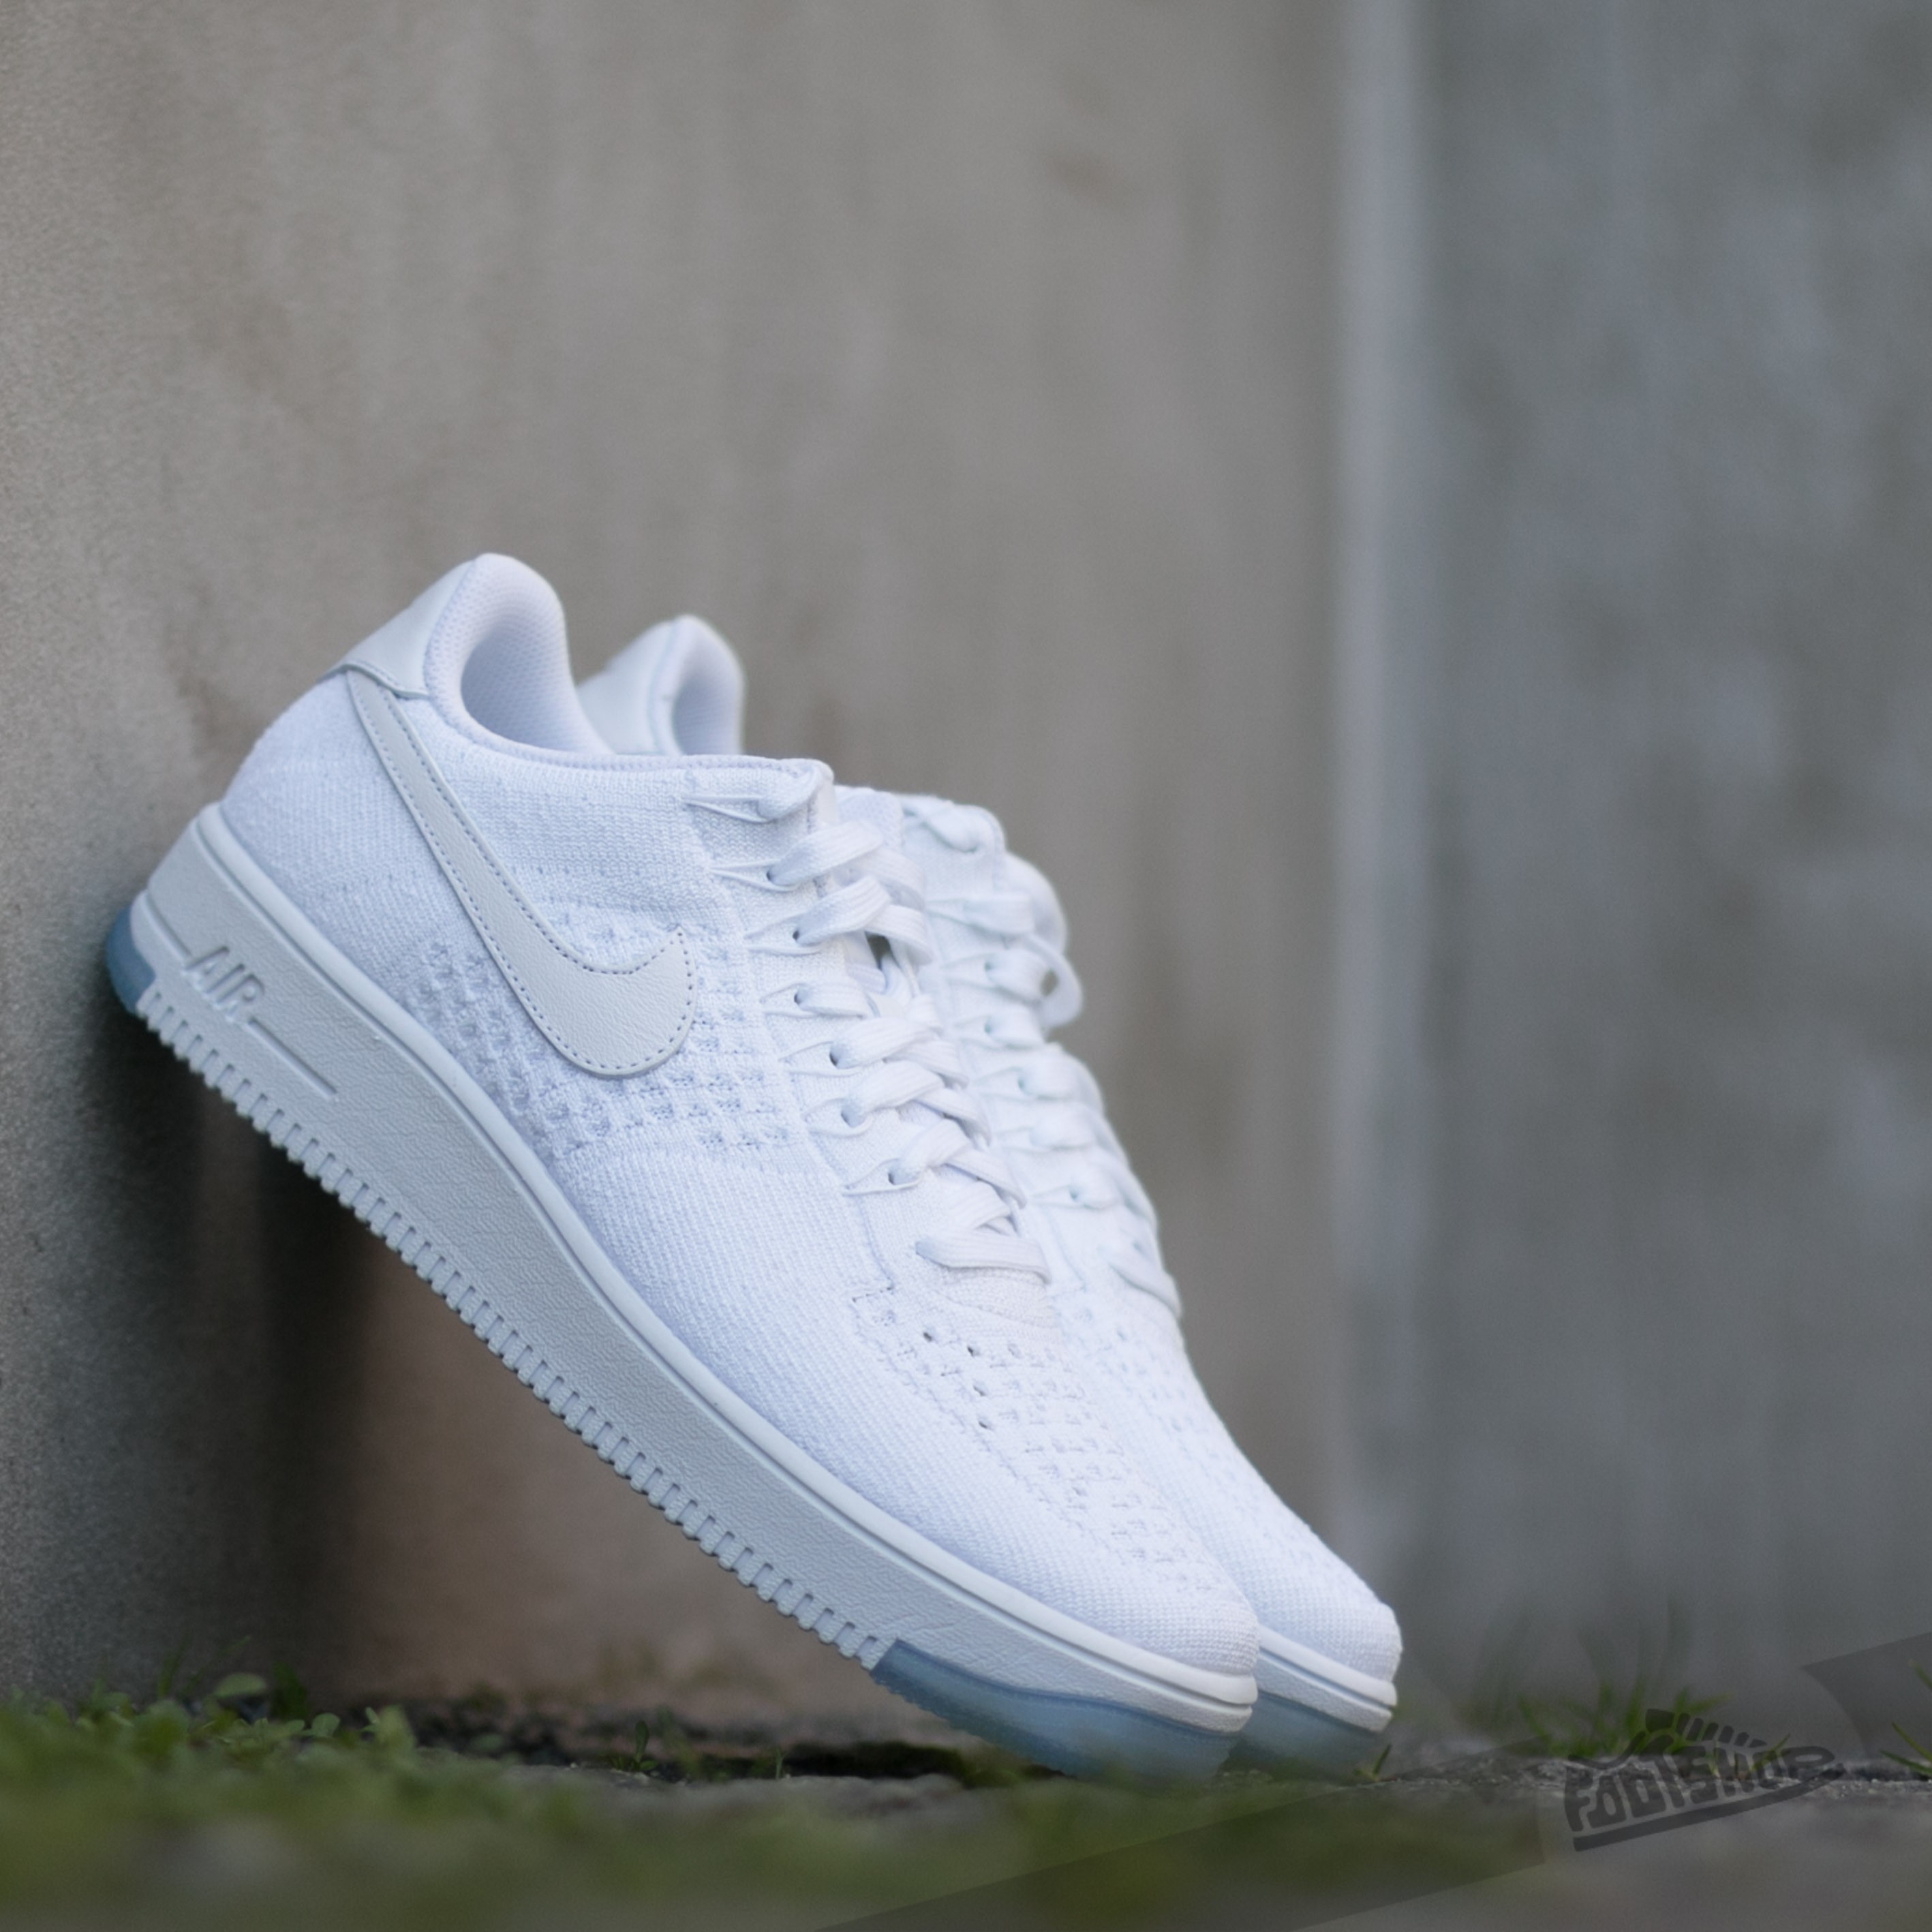 Nike Air Force 1 Ultra Flyknit Low White White Ice | Footshop